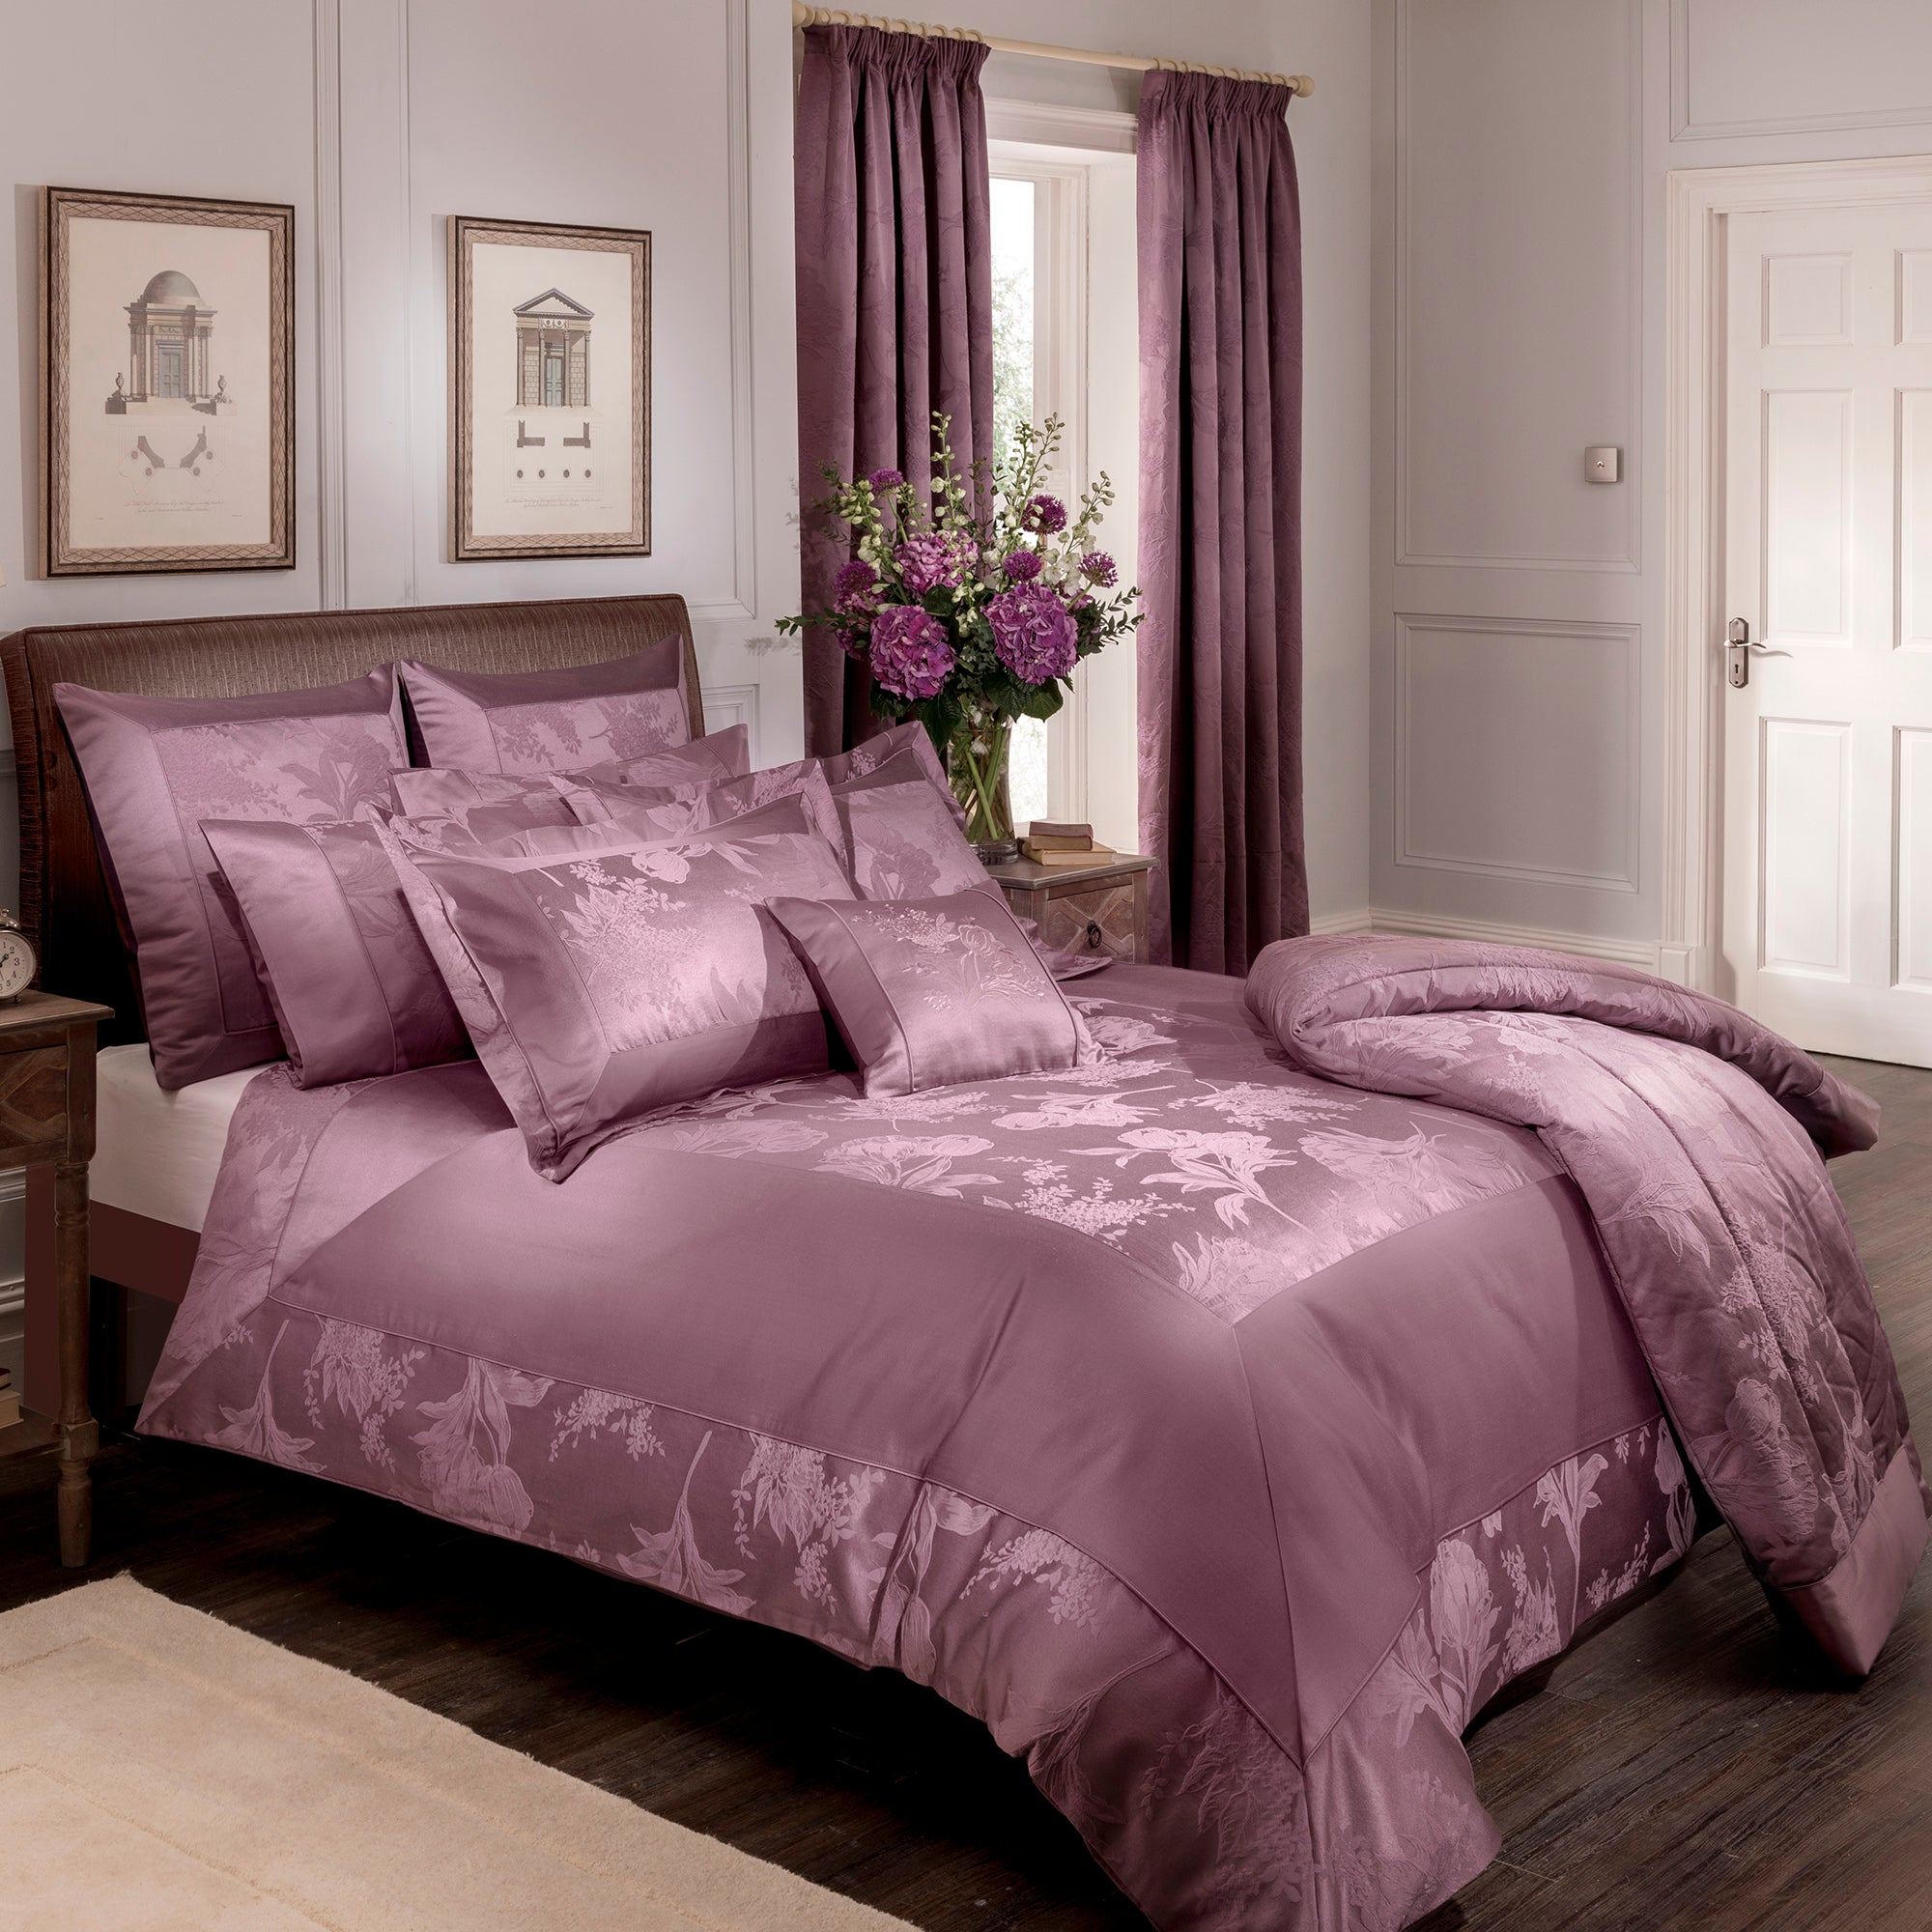 Dorma Plum Jasmina Collection Duvet Cover